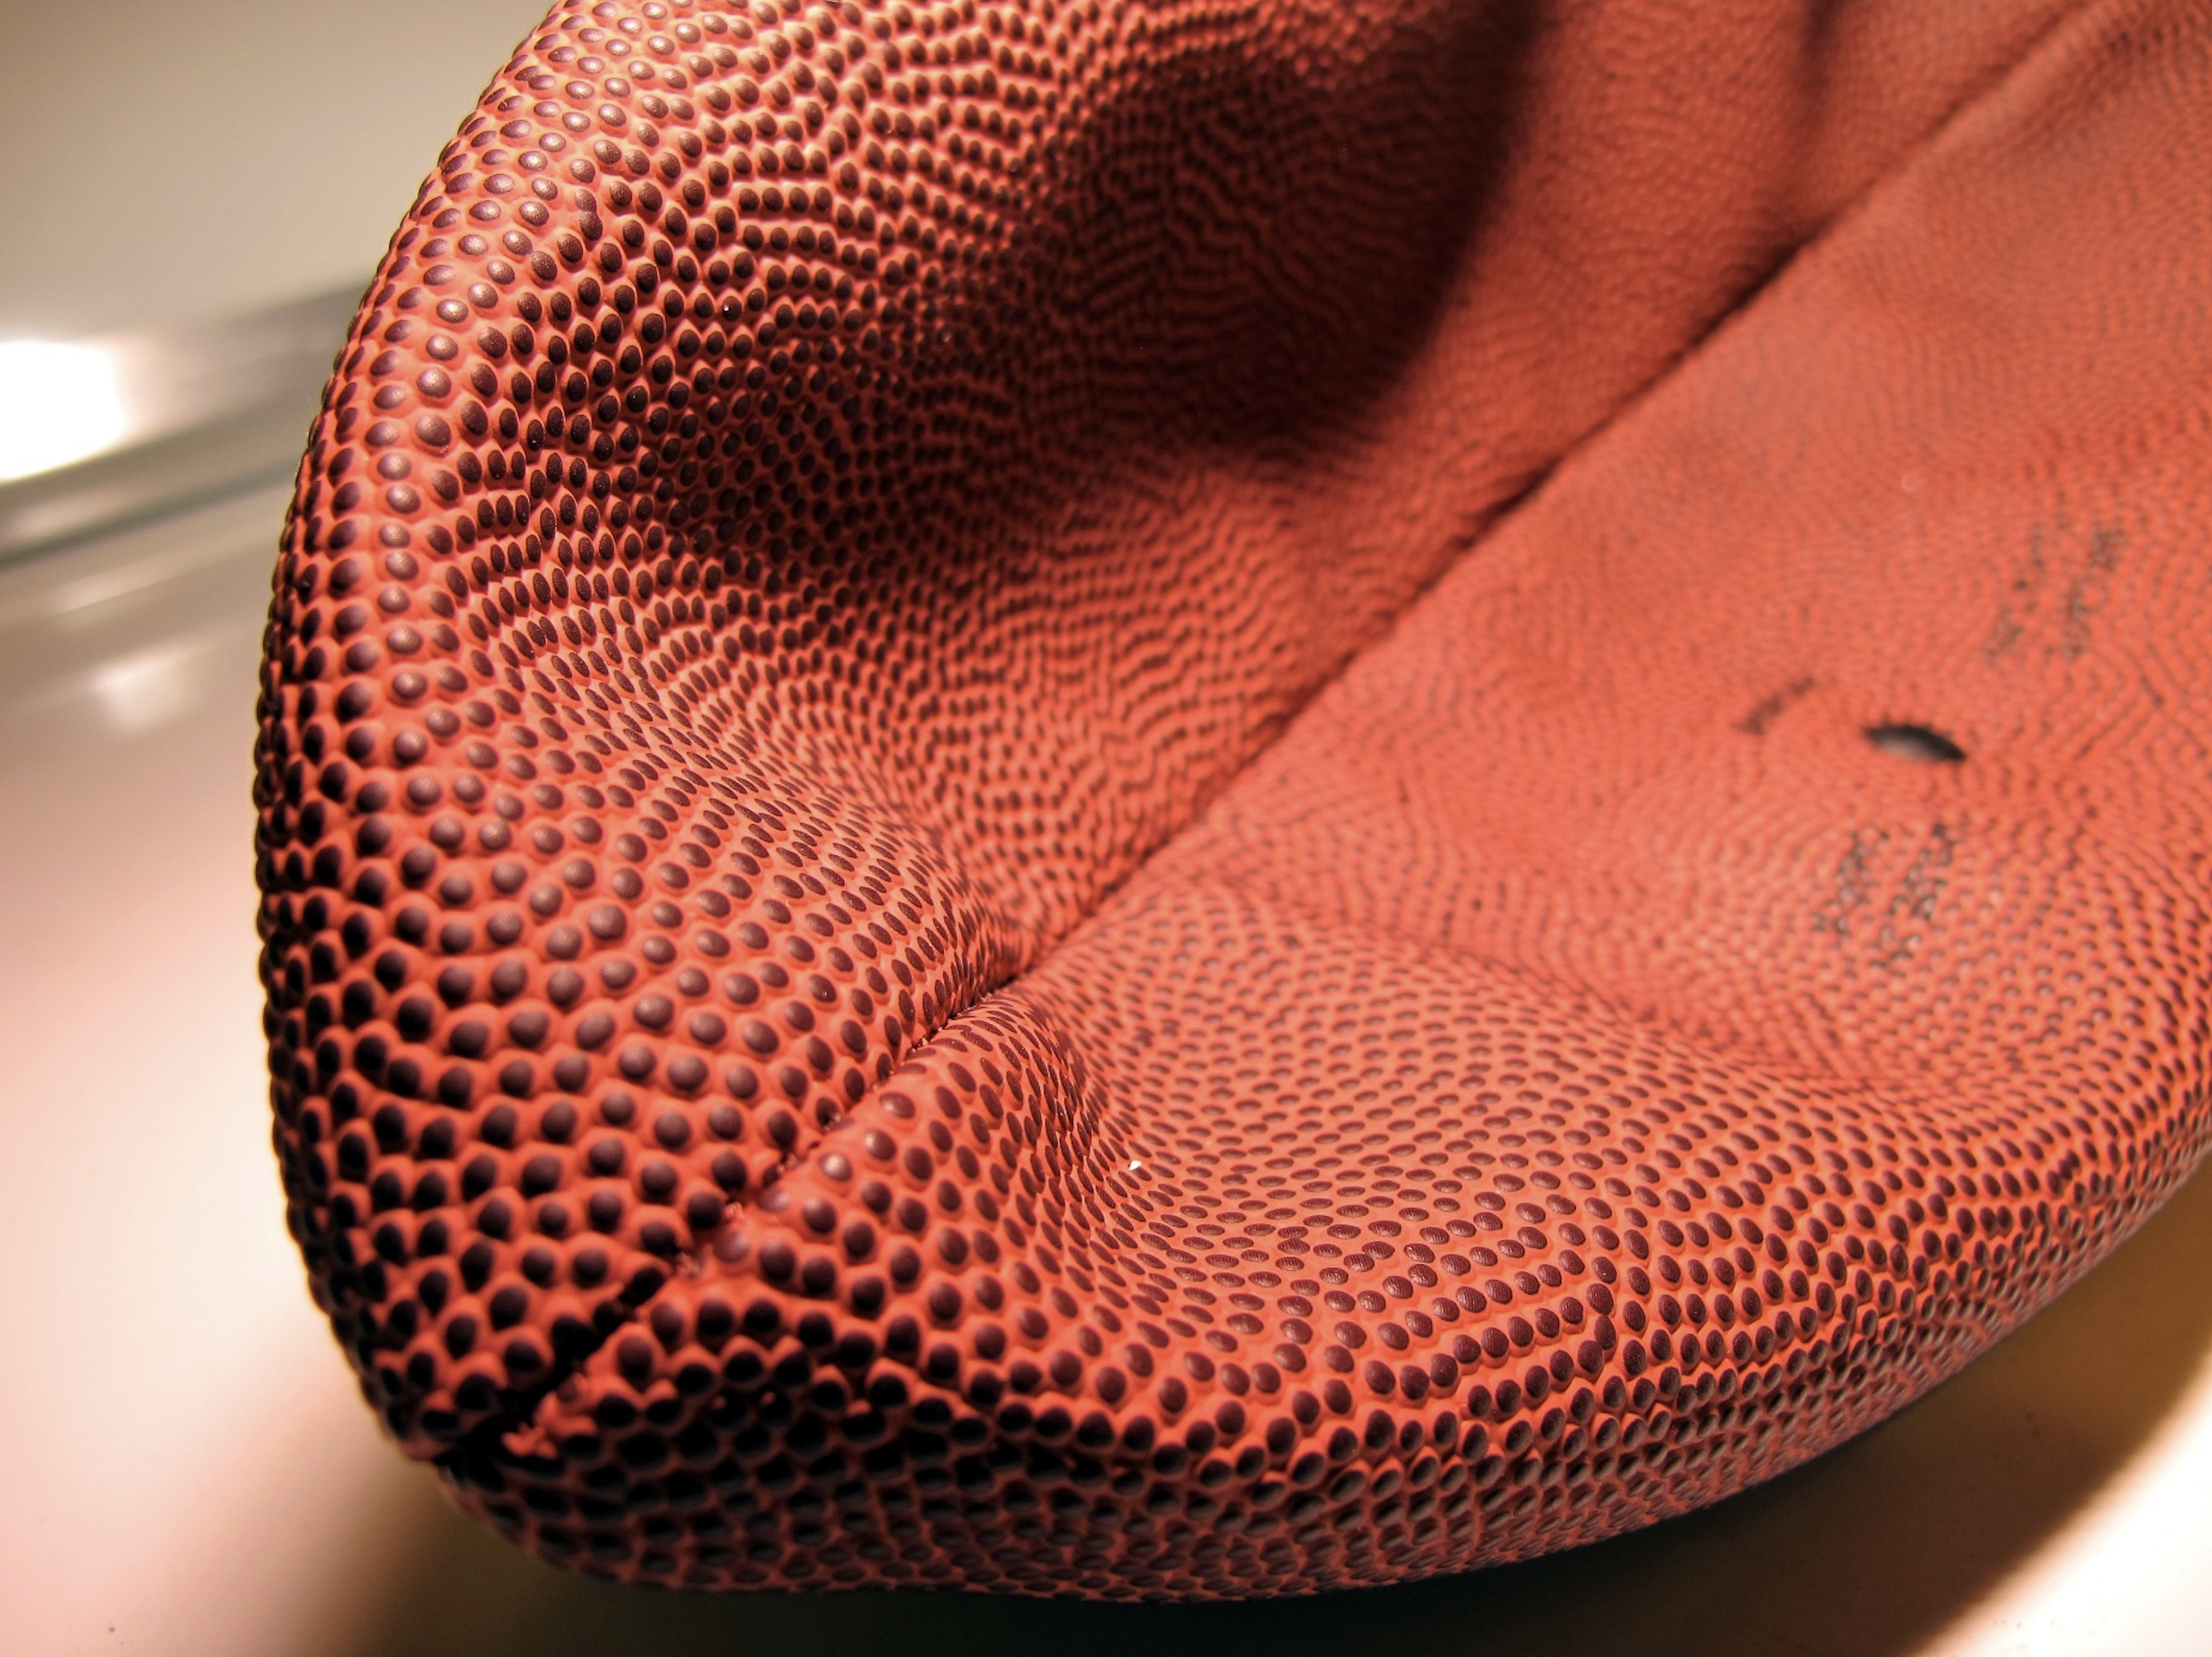 Buccaneers Finish Deflating Footballs in Preparation for Tom Brady's Arrival